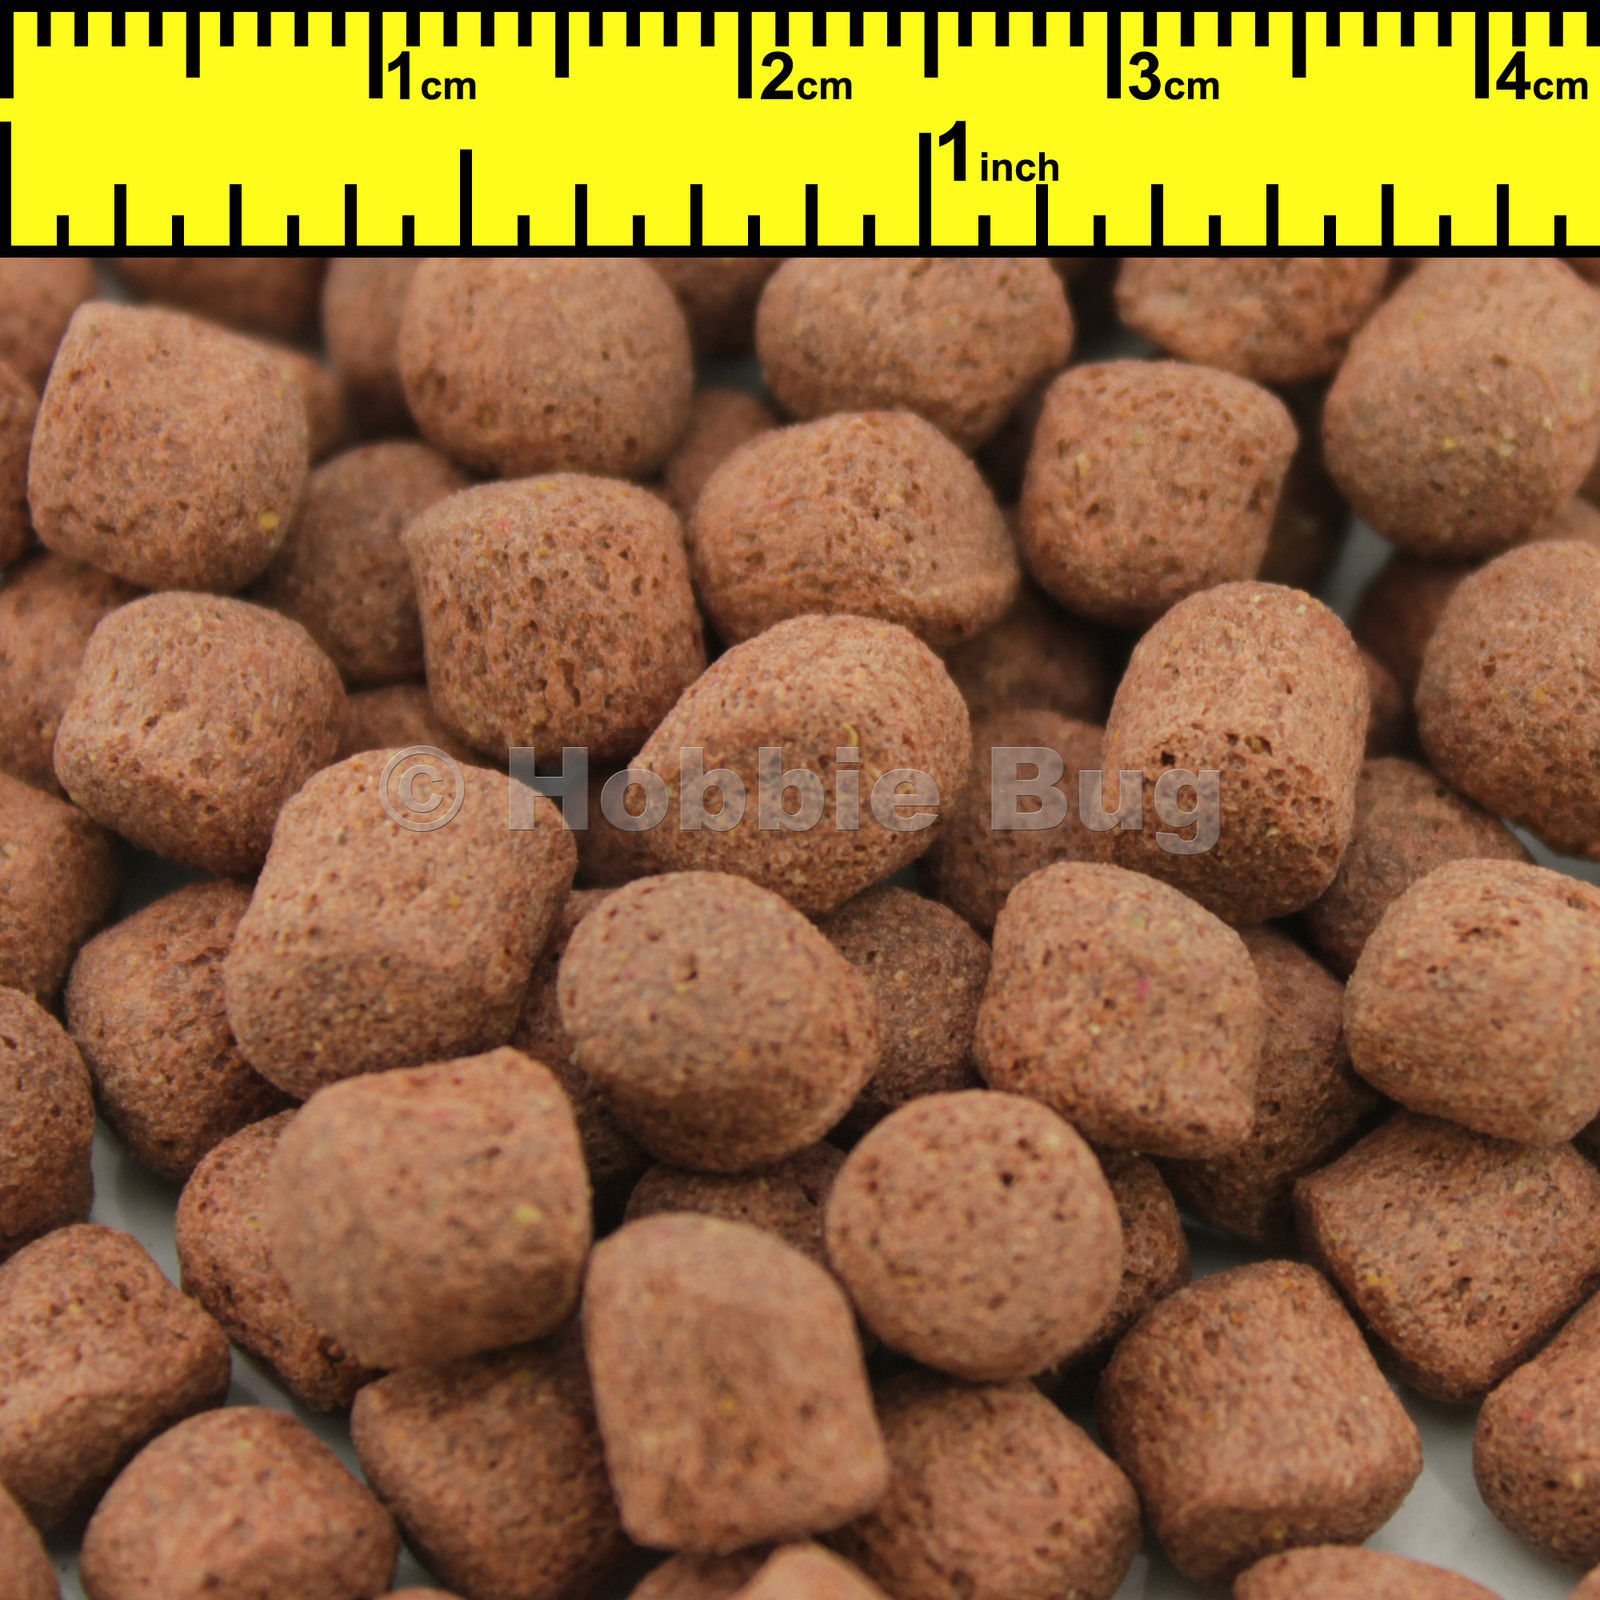 Freshwater Aquarium Fish Under 1 Inch - 2 pack 2oz hikari cichlid gold large pellets